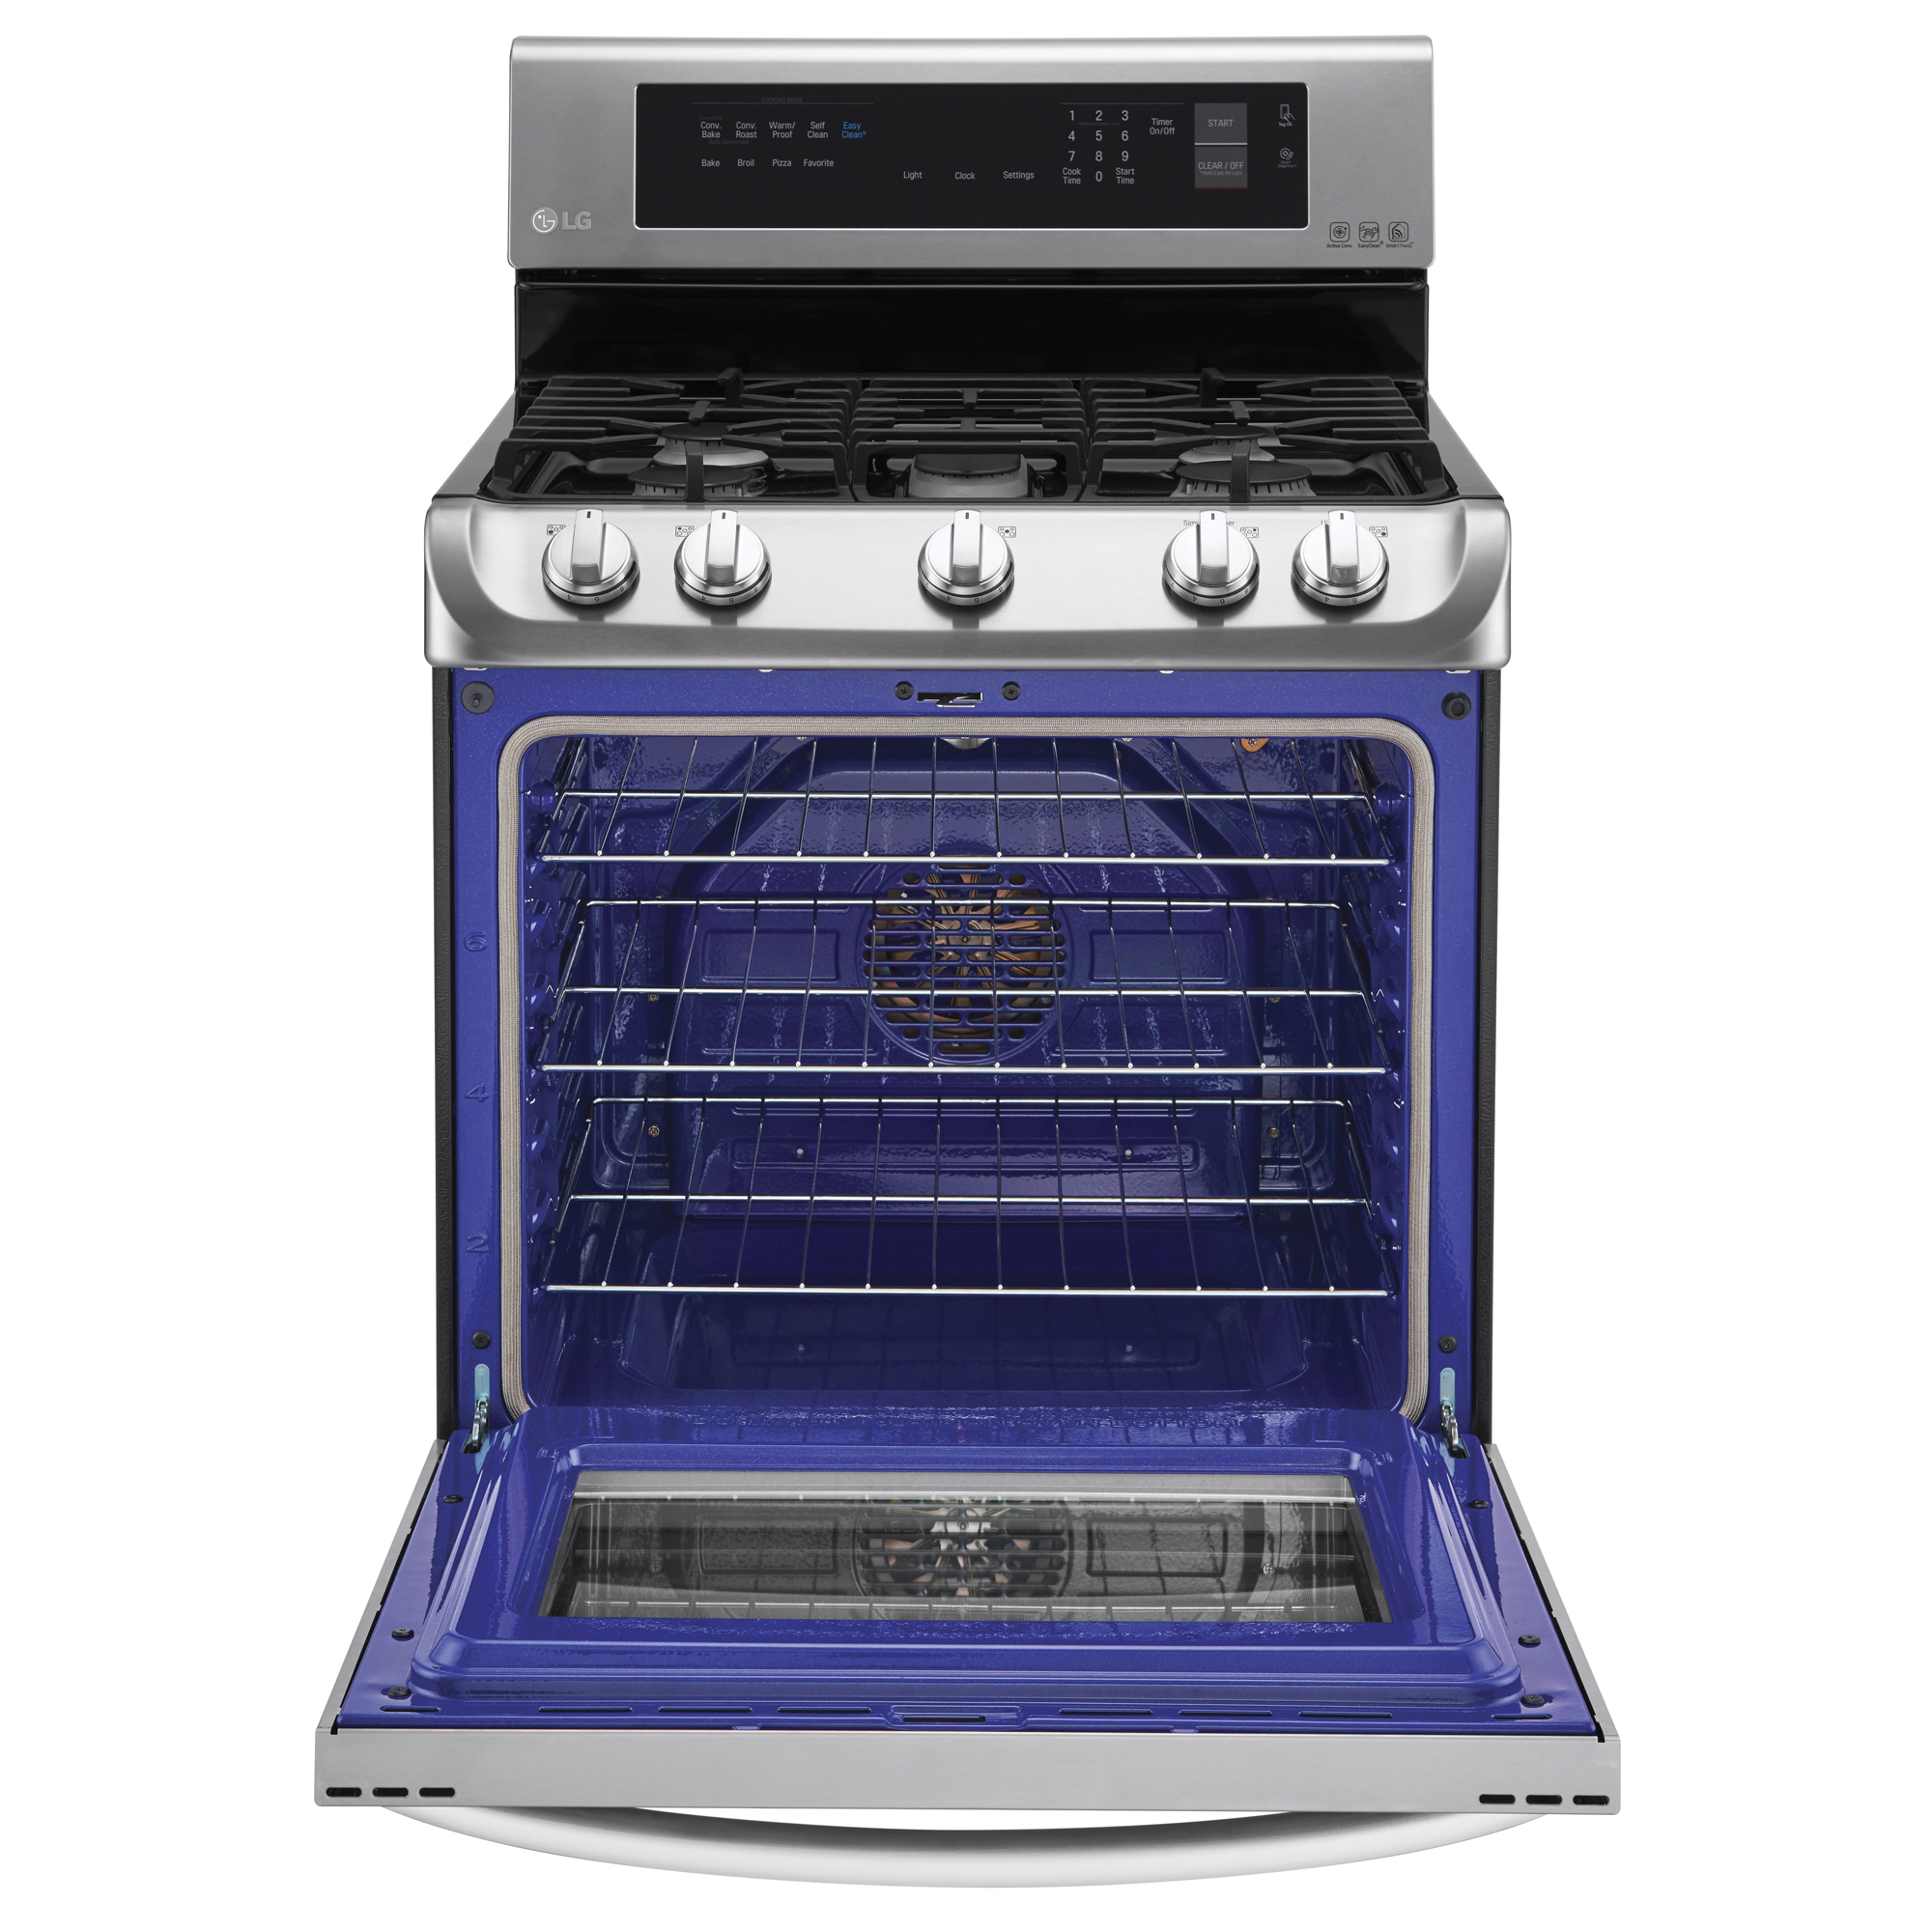 LG LRG4113ST 6.3 cu. ft. Gas Single Oven Range w/ ProBake Convection™ & EasyClean® – Stainless Steel